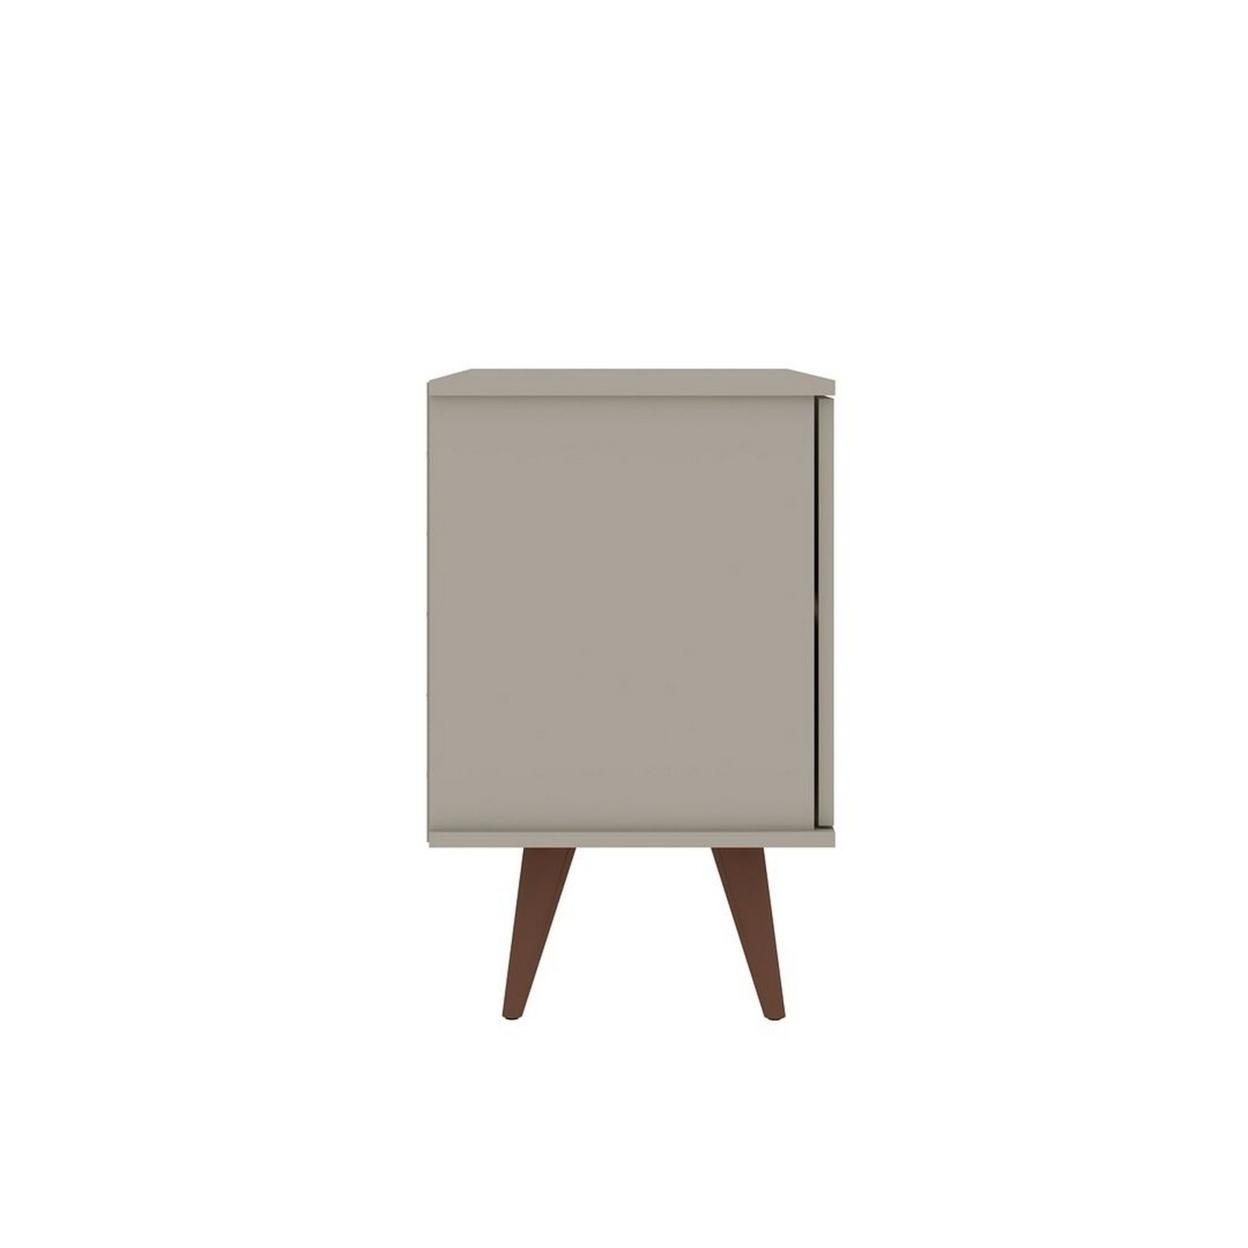 Hampton 33.07 Accent Cabinet with 2 Shelves Solid Wood Legs in Off White